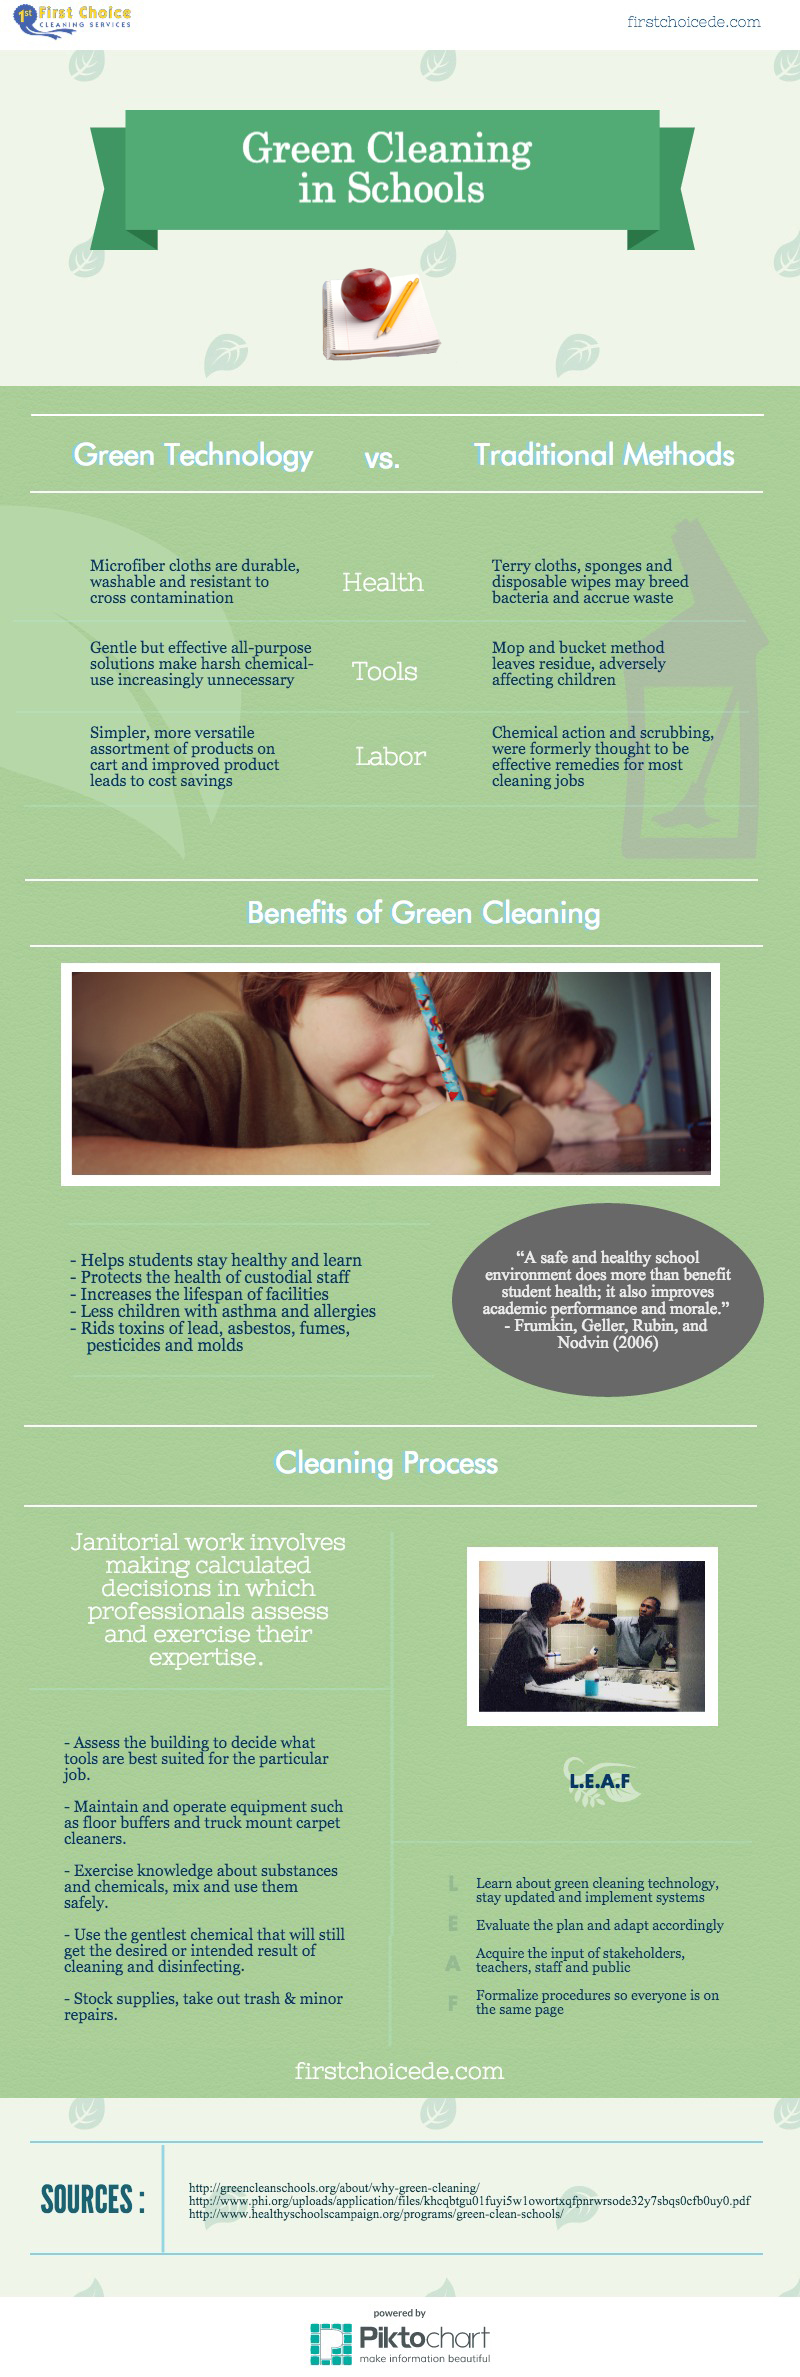 Green Cleaning in Schools